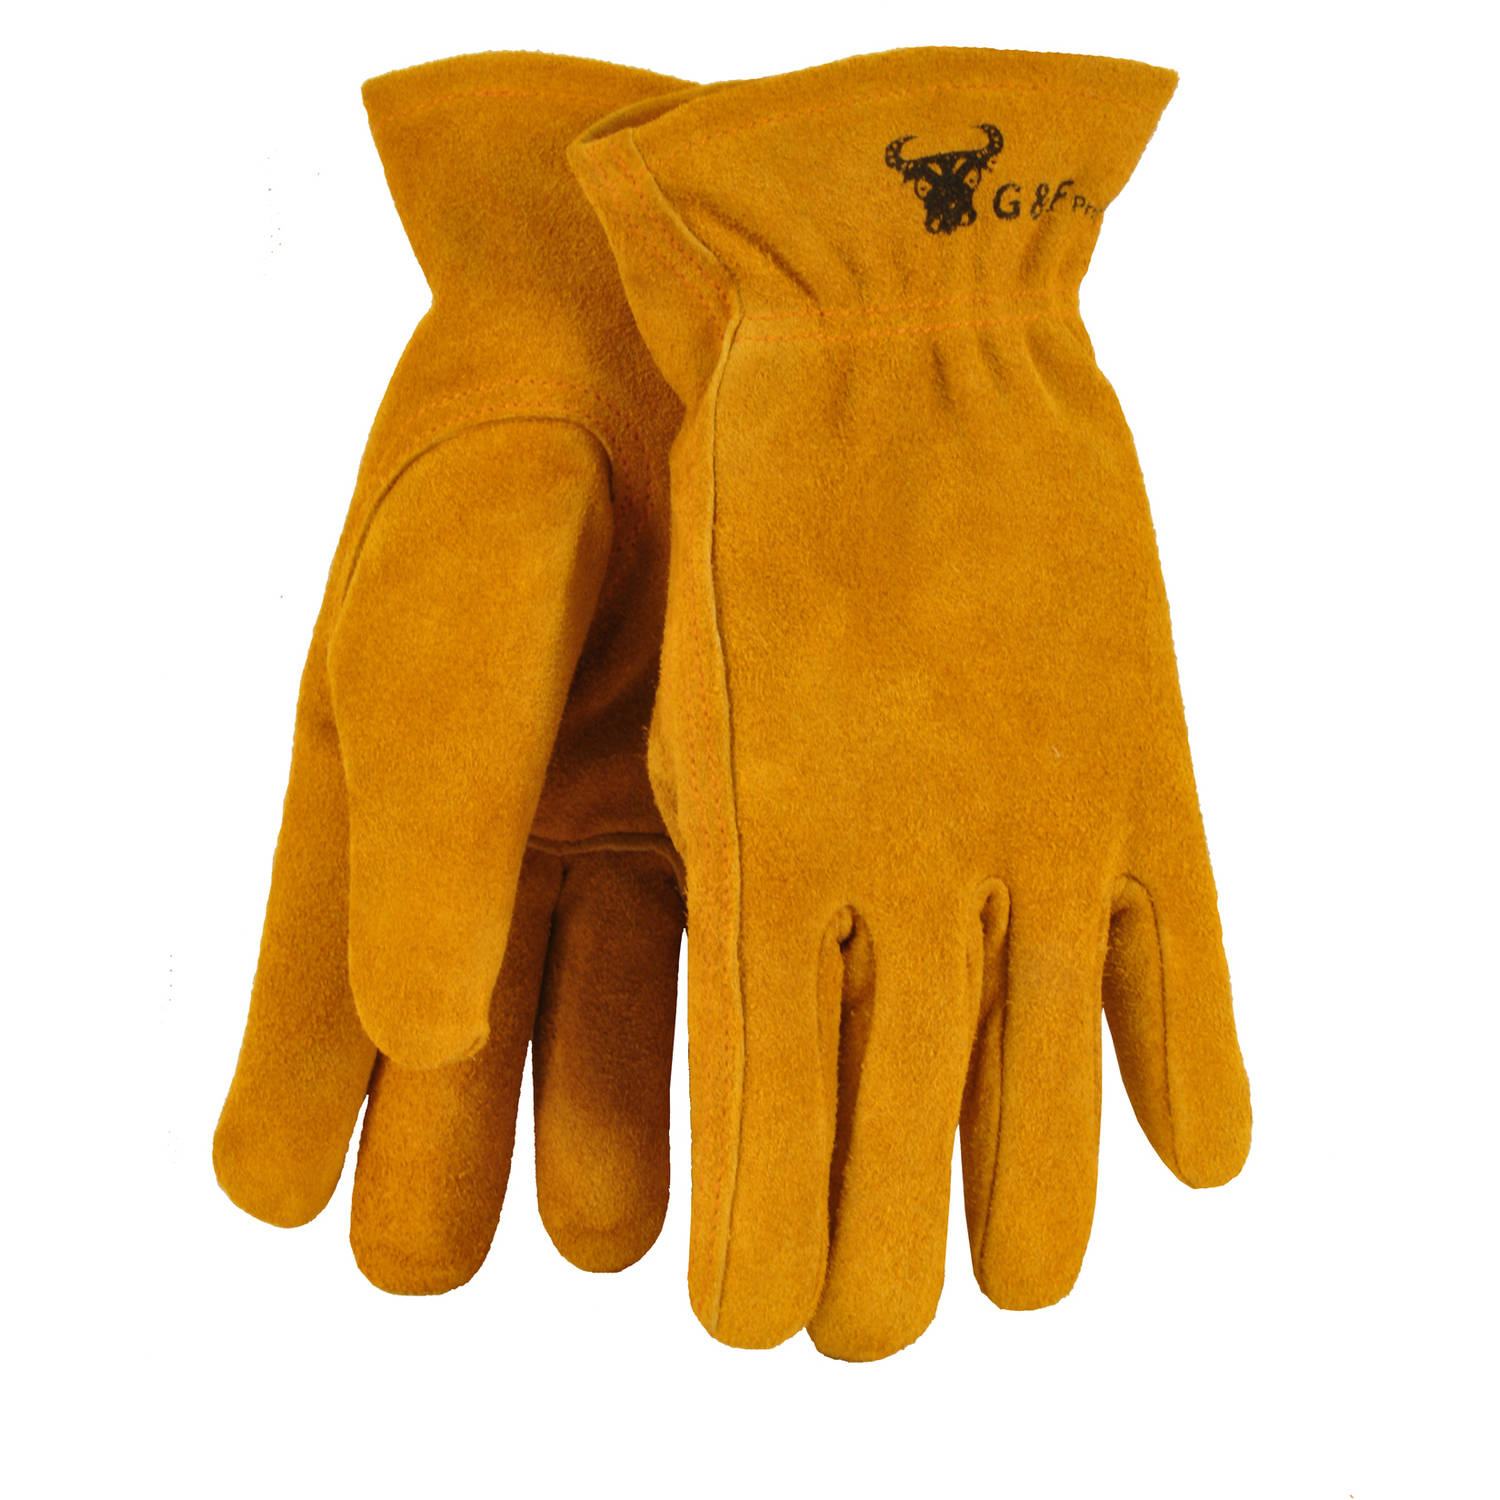 G & F Kids Leather Work Gloves for Ages 7 to 11, Brown